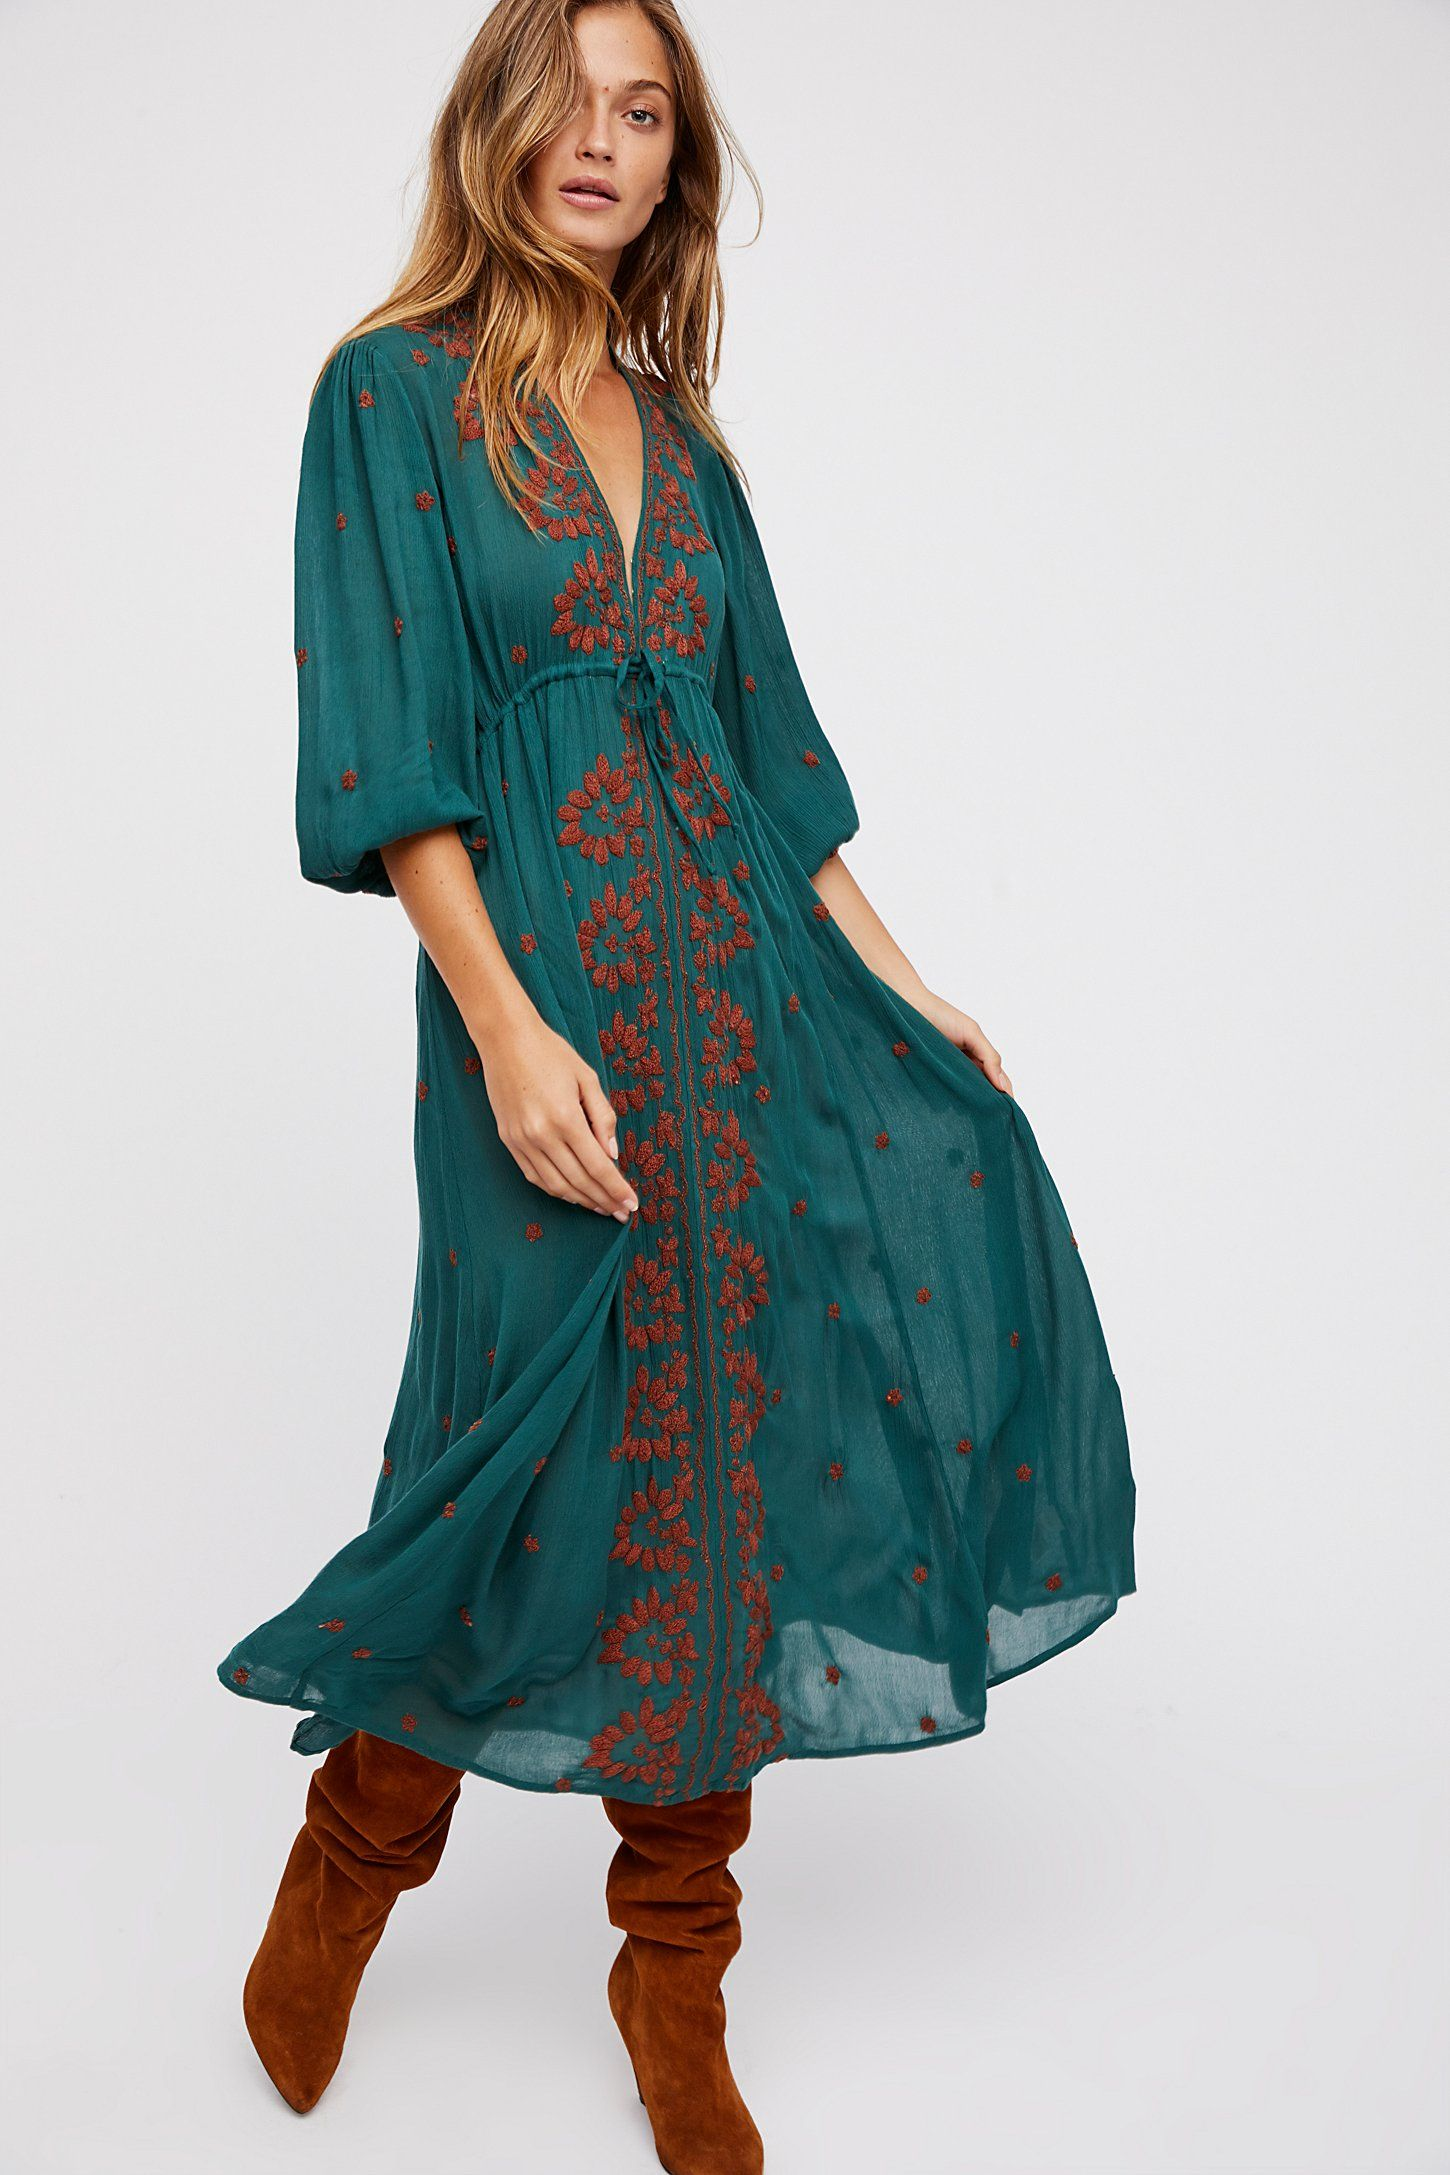 f6a544542362 Shop our Embroidered Fable Dress at Free People.com. Share style pics with  FP Me, and read & post reviews. Free shipping worldwide - see site for  details.